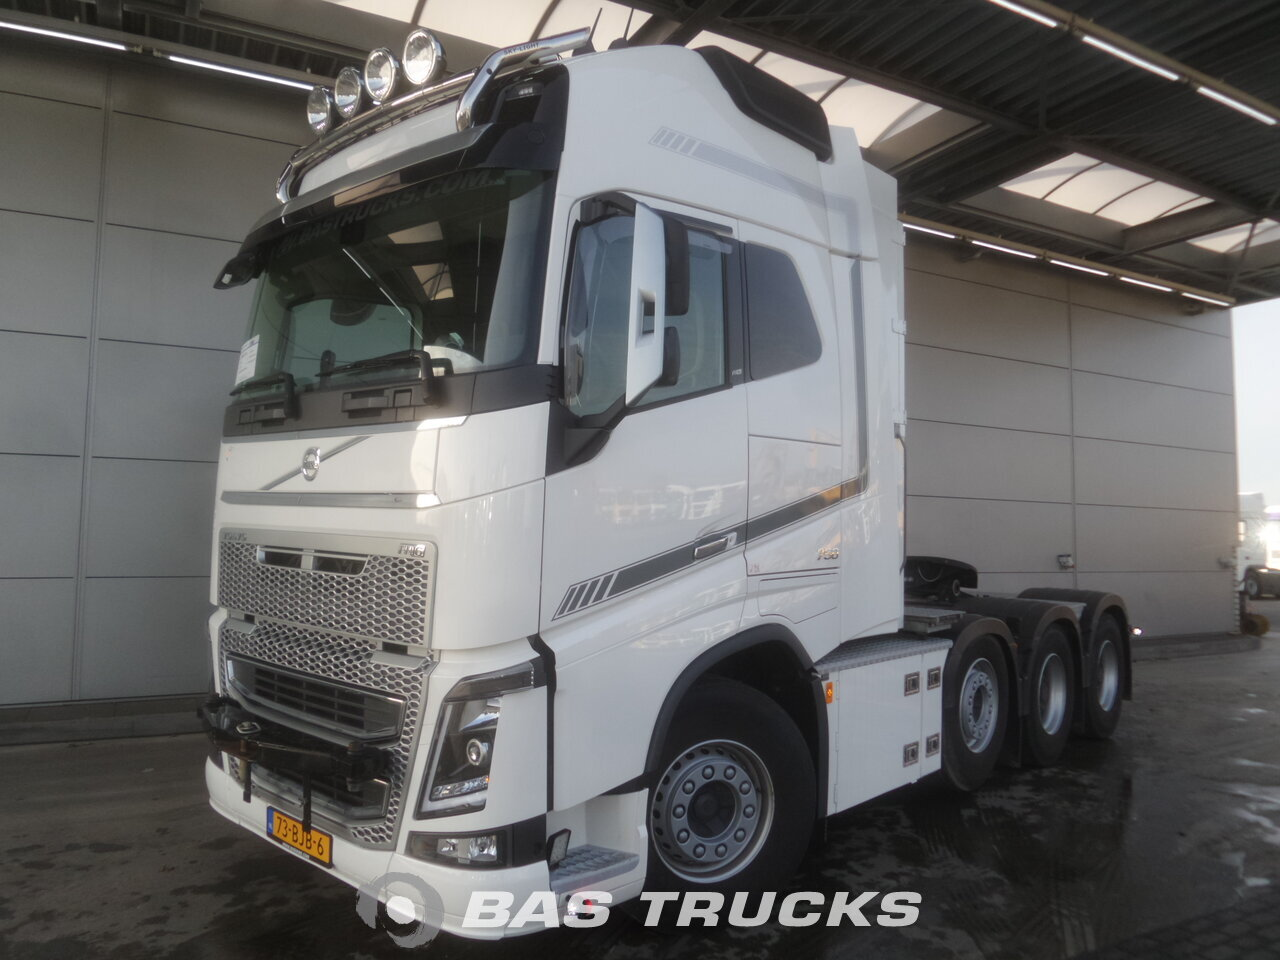 For sale at BAS Trucks: Volvo FH16 750 XL 8X4 08/2016